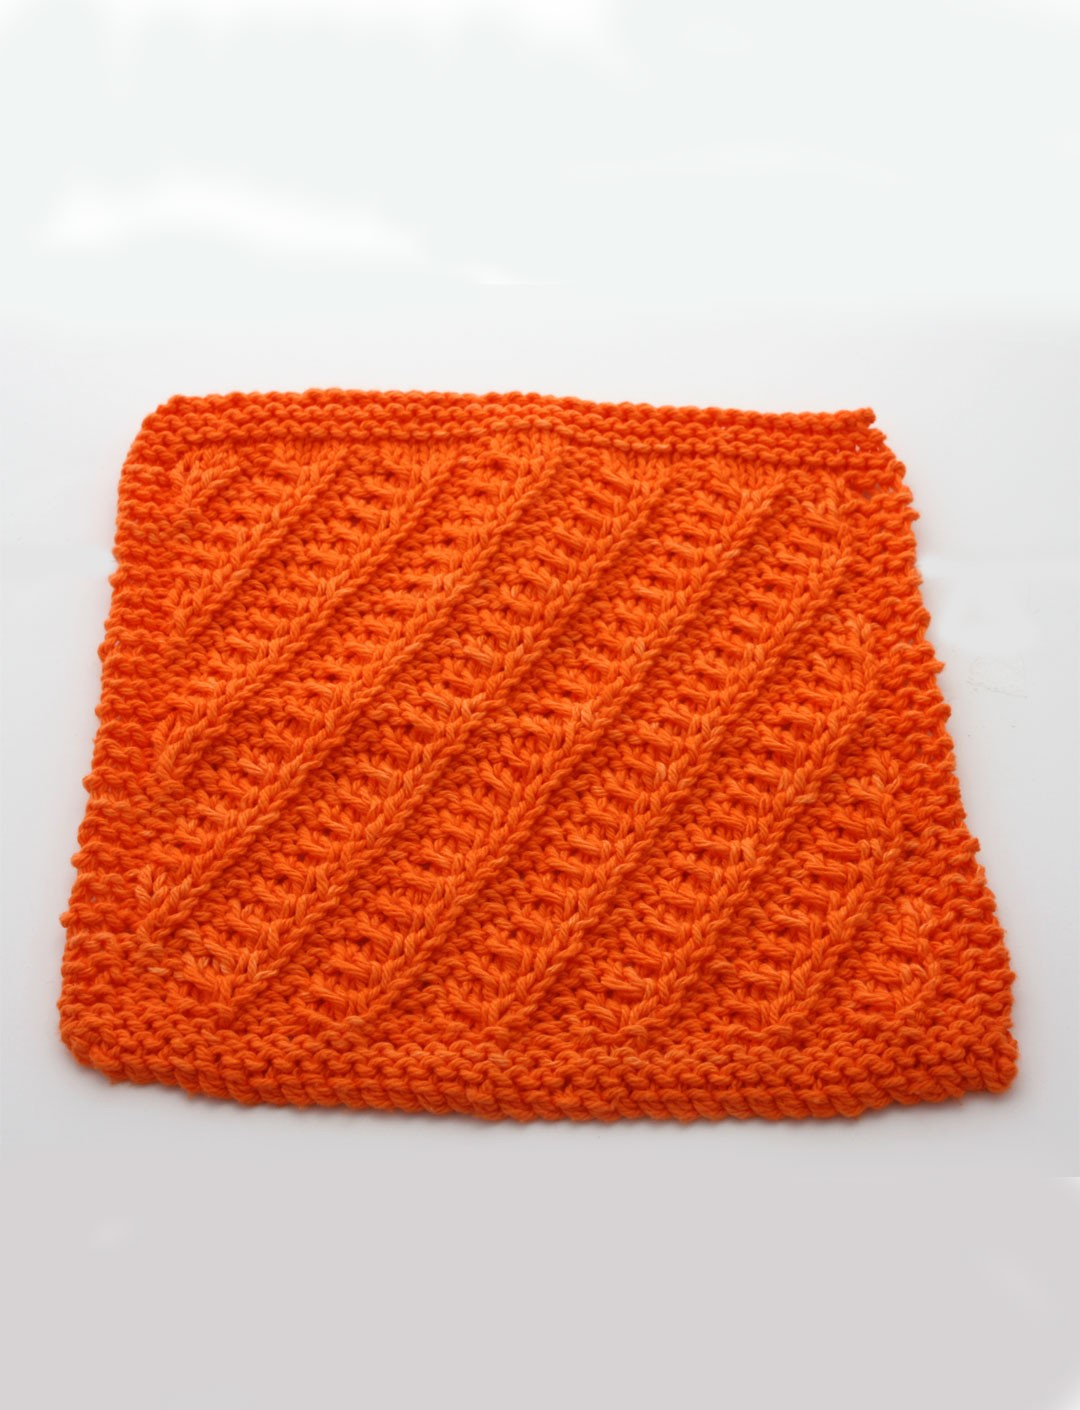 Free Crochet Pattern For Diagonal Dishcloth : 34 New Crochet Dishcloth Patterns For Free ? Patterns Hub